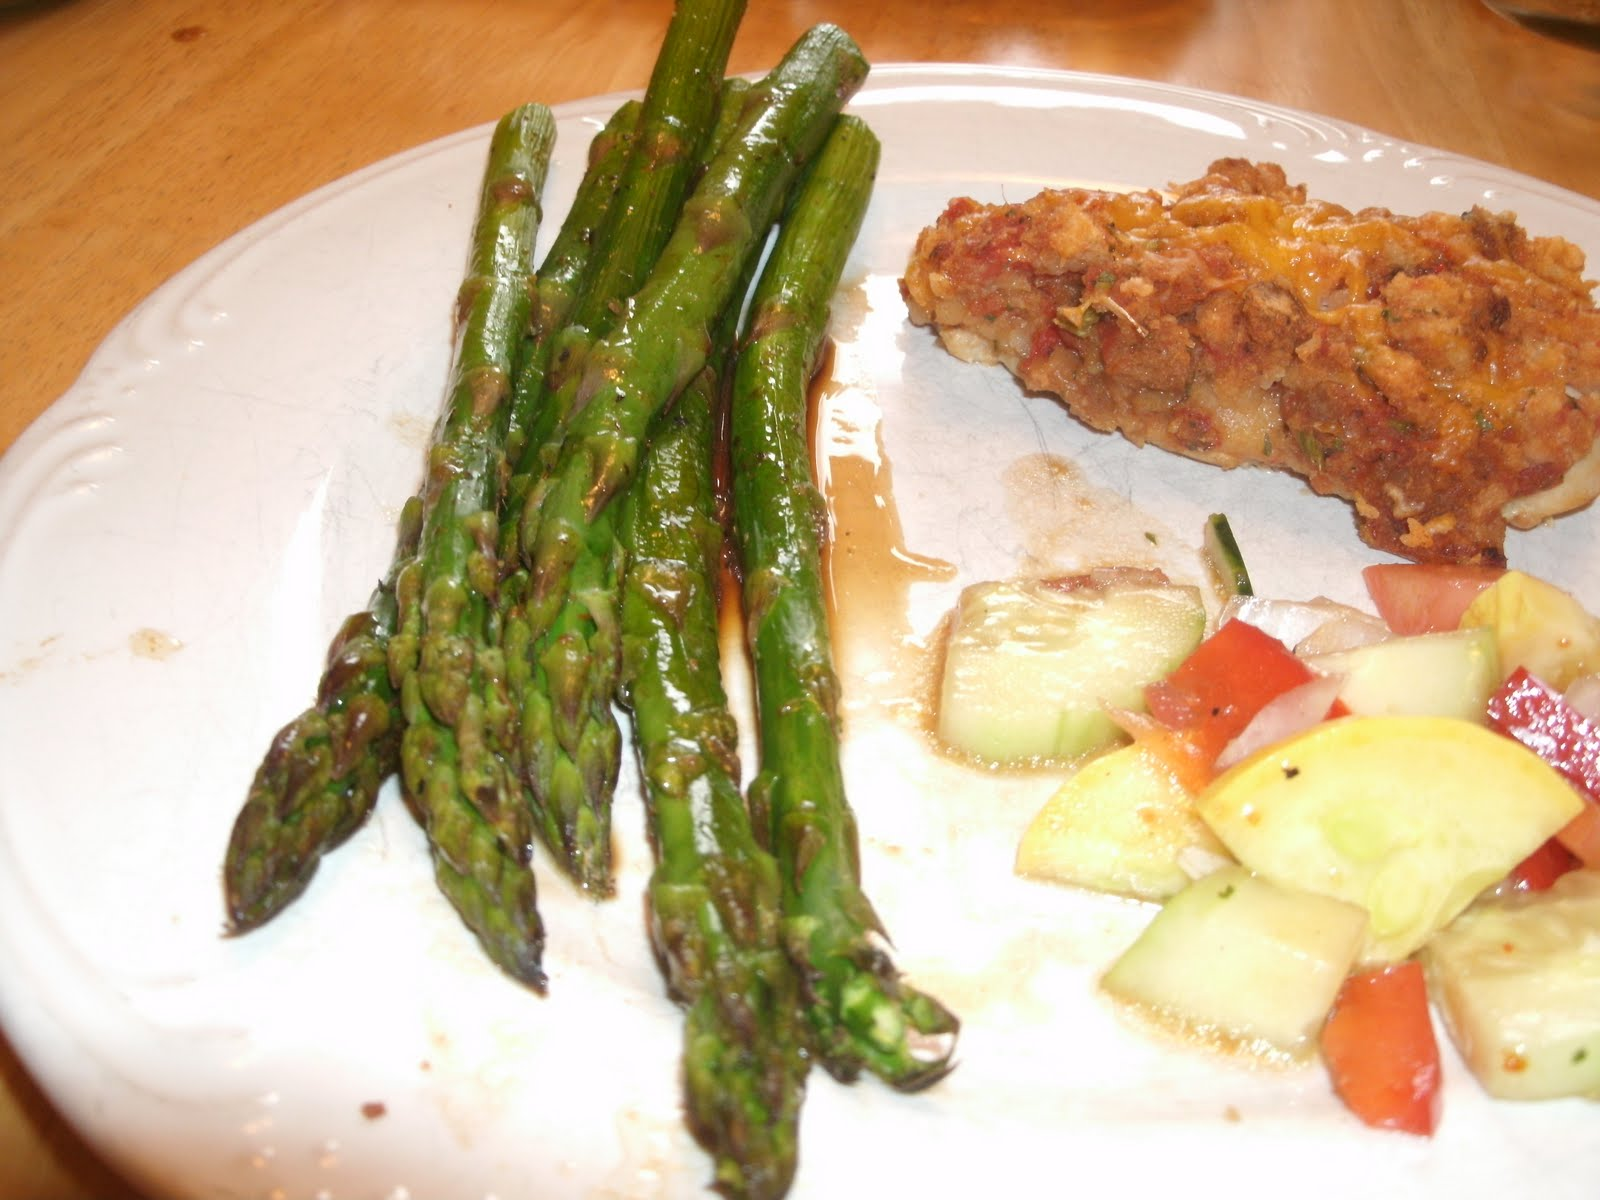 Baked Asparagus with Balsamic Butter Sauce Adapted from All Recipes